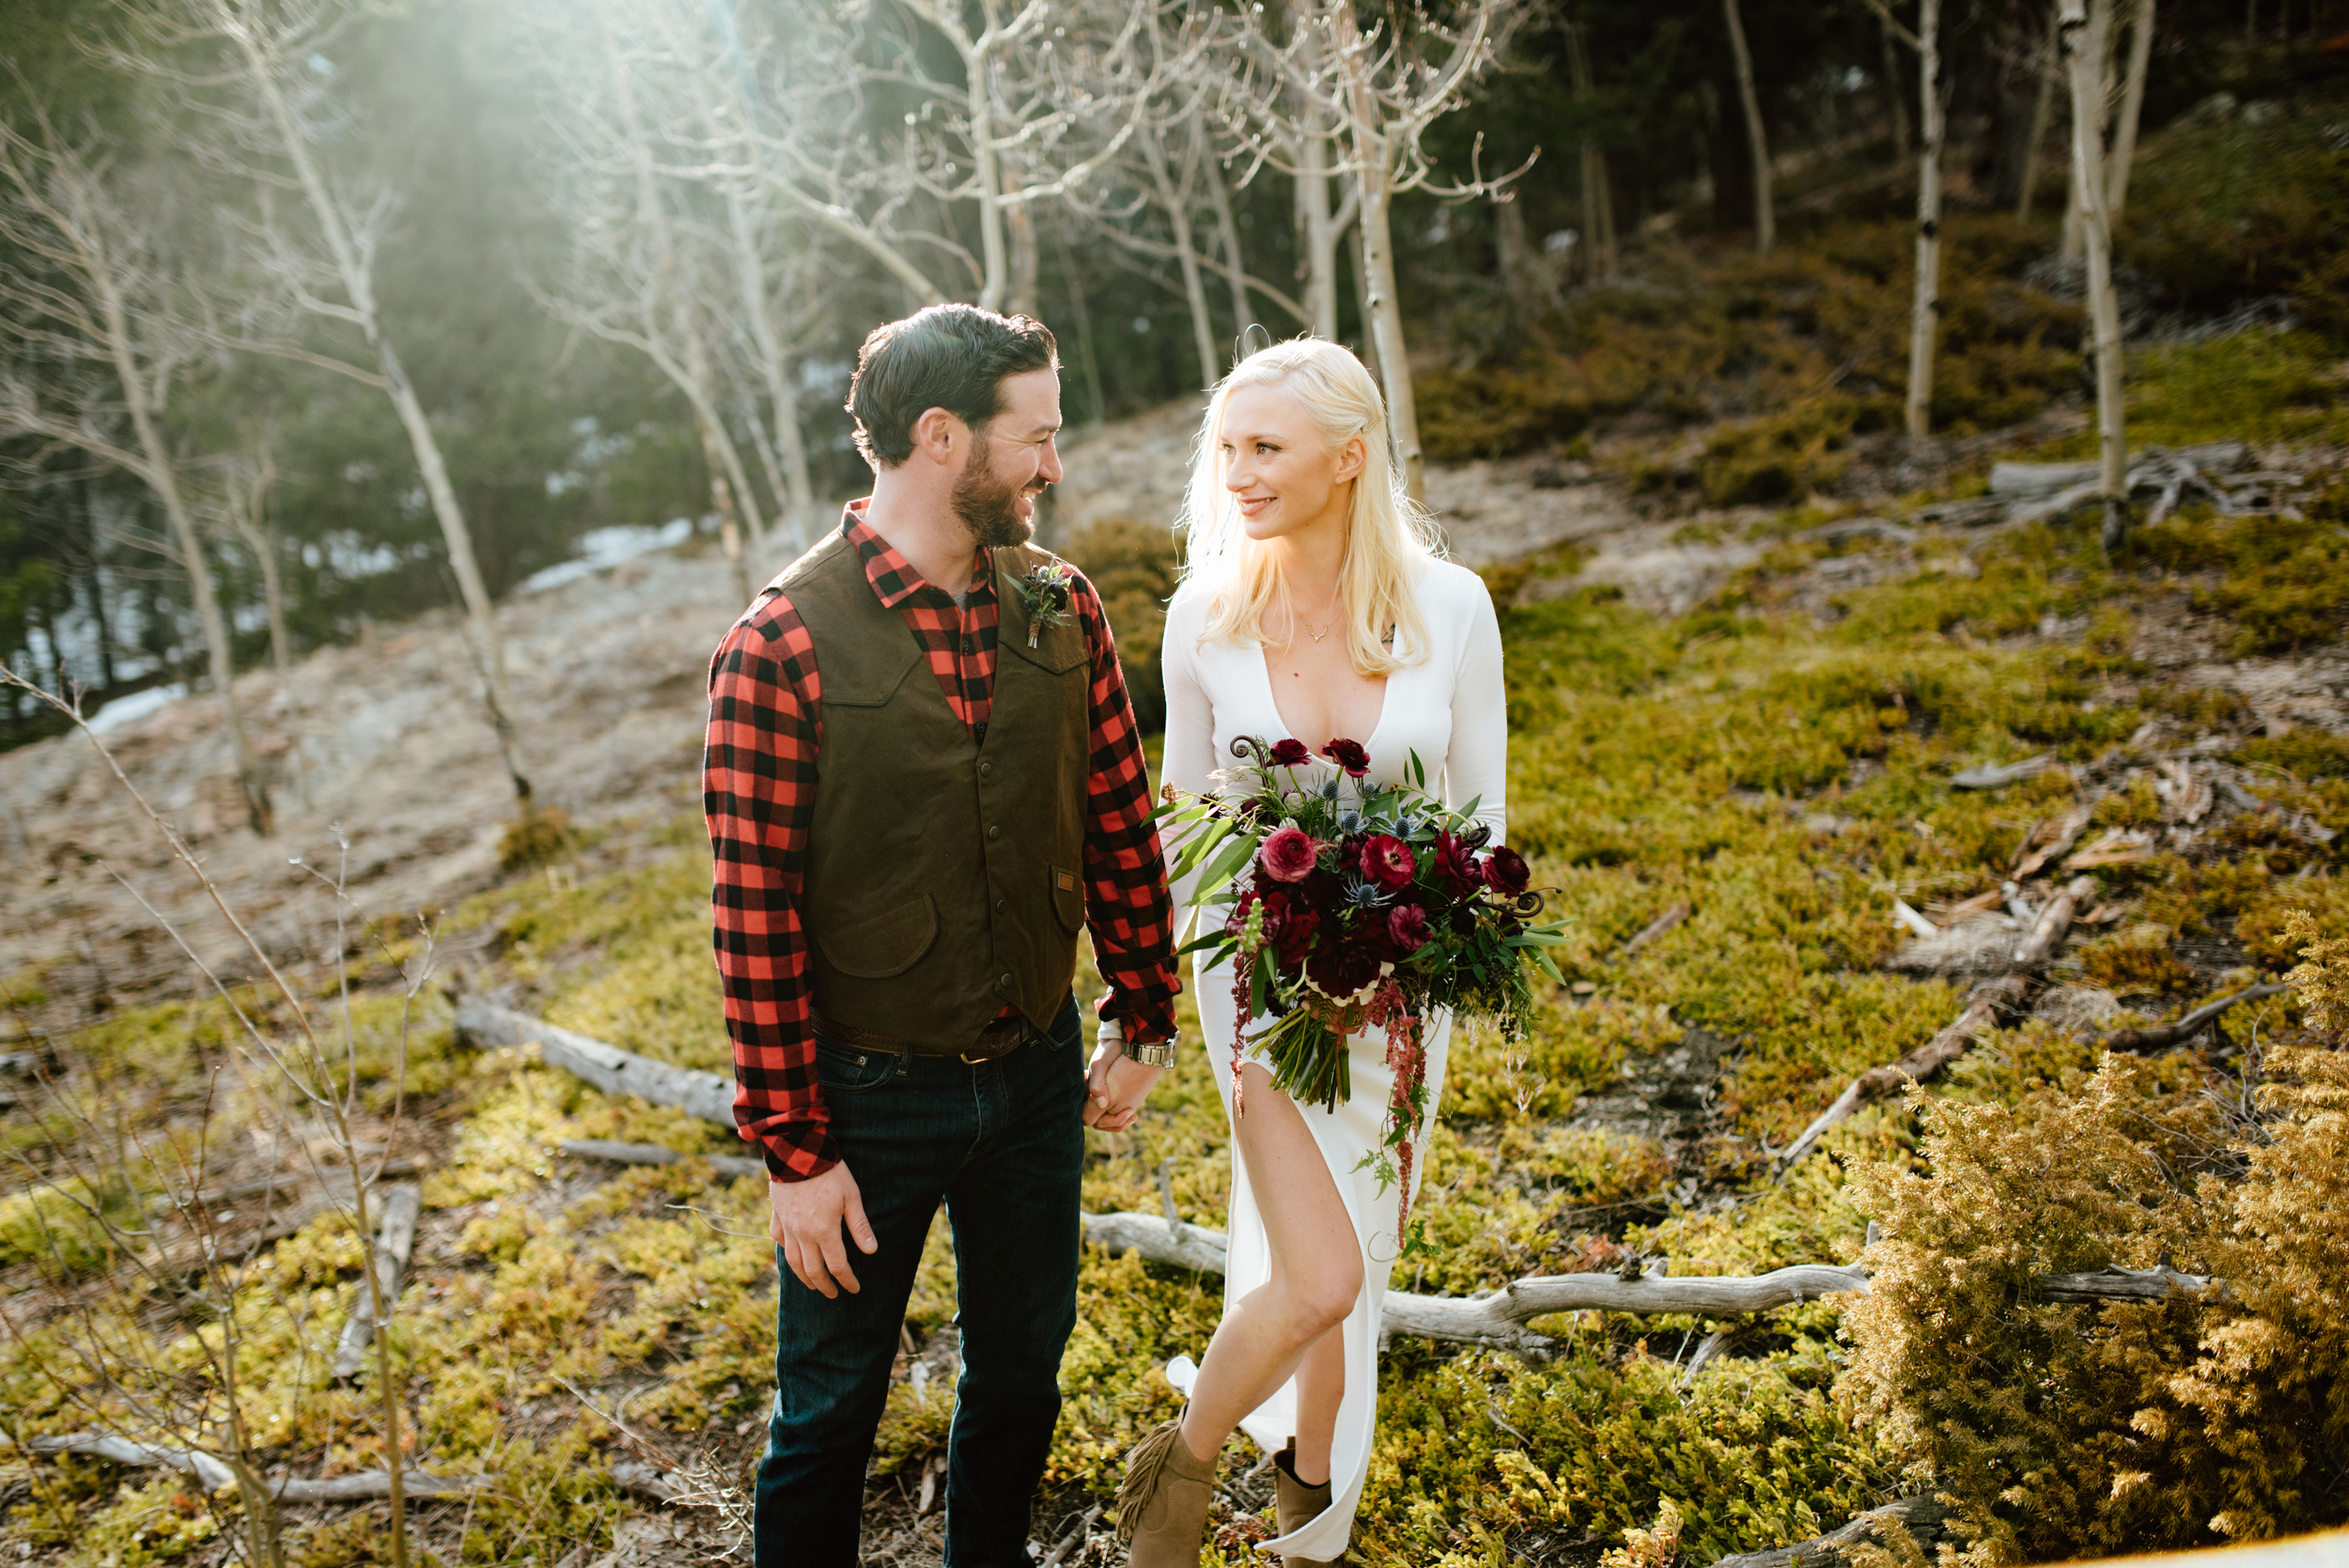 This adventurous couple looks incredible surrounded by the sun kissed aspen trees in a forest near the mountains of Black Hawk, Colorado. What a peaceful elopement! | Photo by adventure elopement photographer, Maddie Mae.